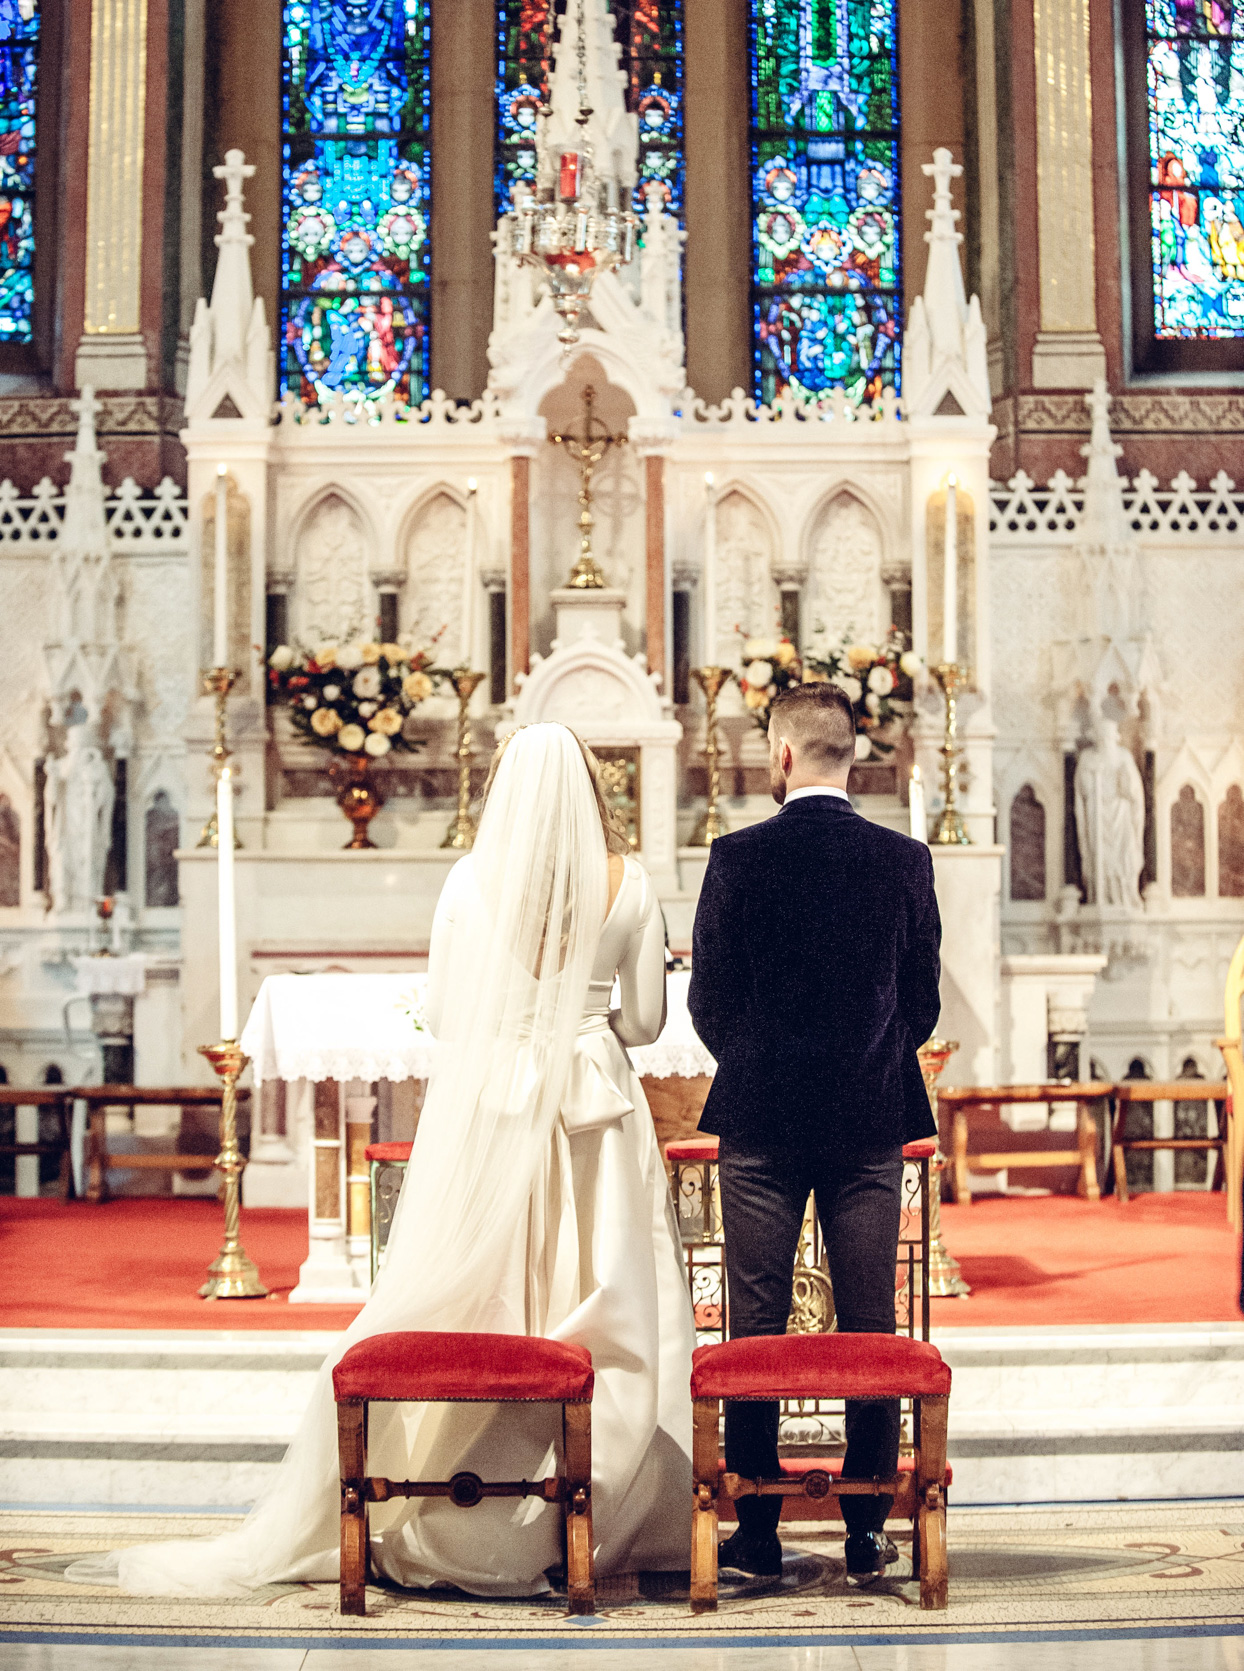 bride and groom in chapel for traditional wedding ceremony